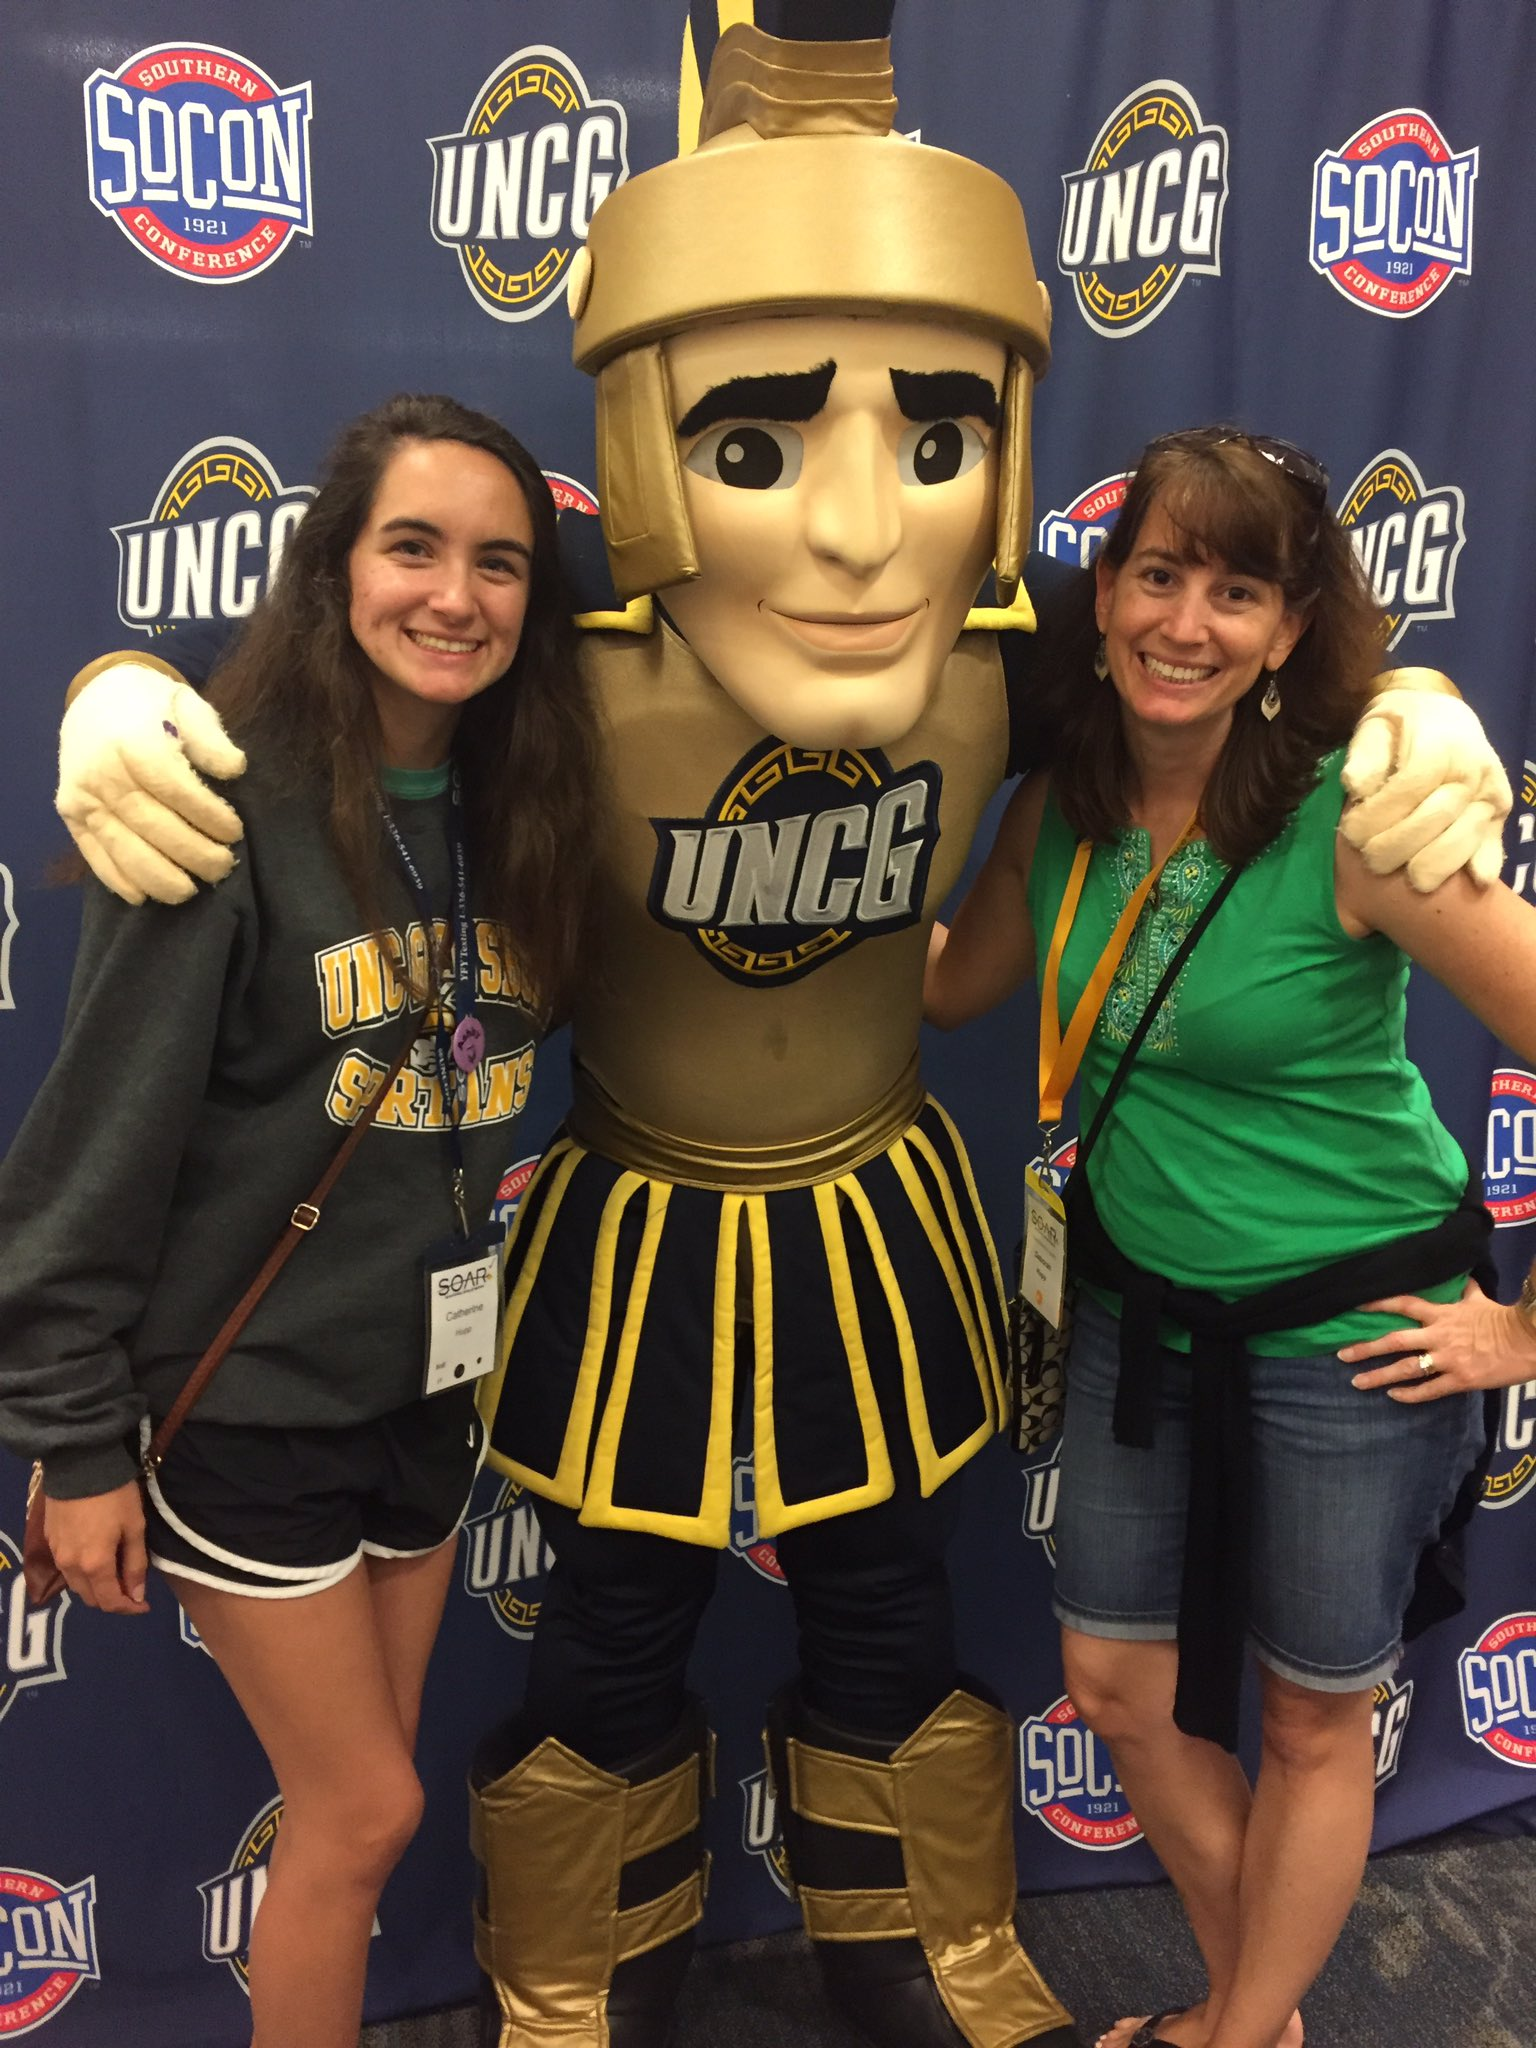 #UNCGsoar great 2 days @Cathupp is stoked to get school started #class2021 @UNCG https://t.co/DtQPf8eX7y